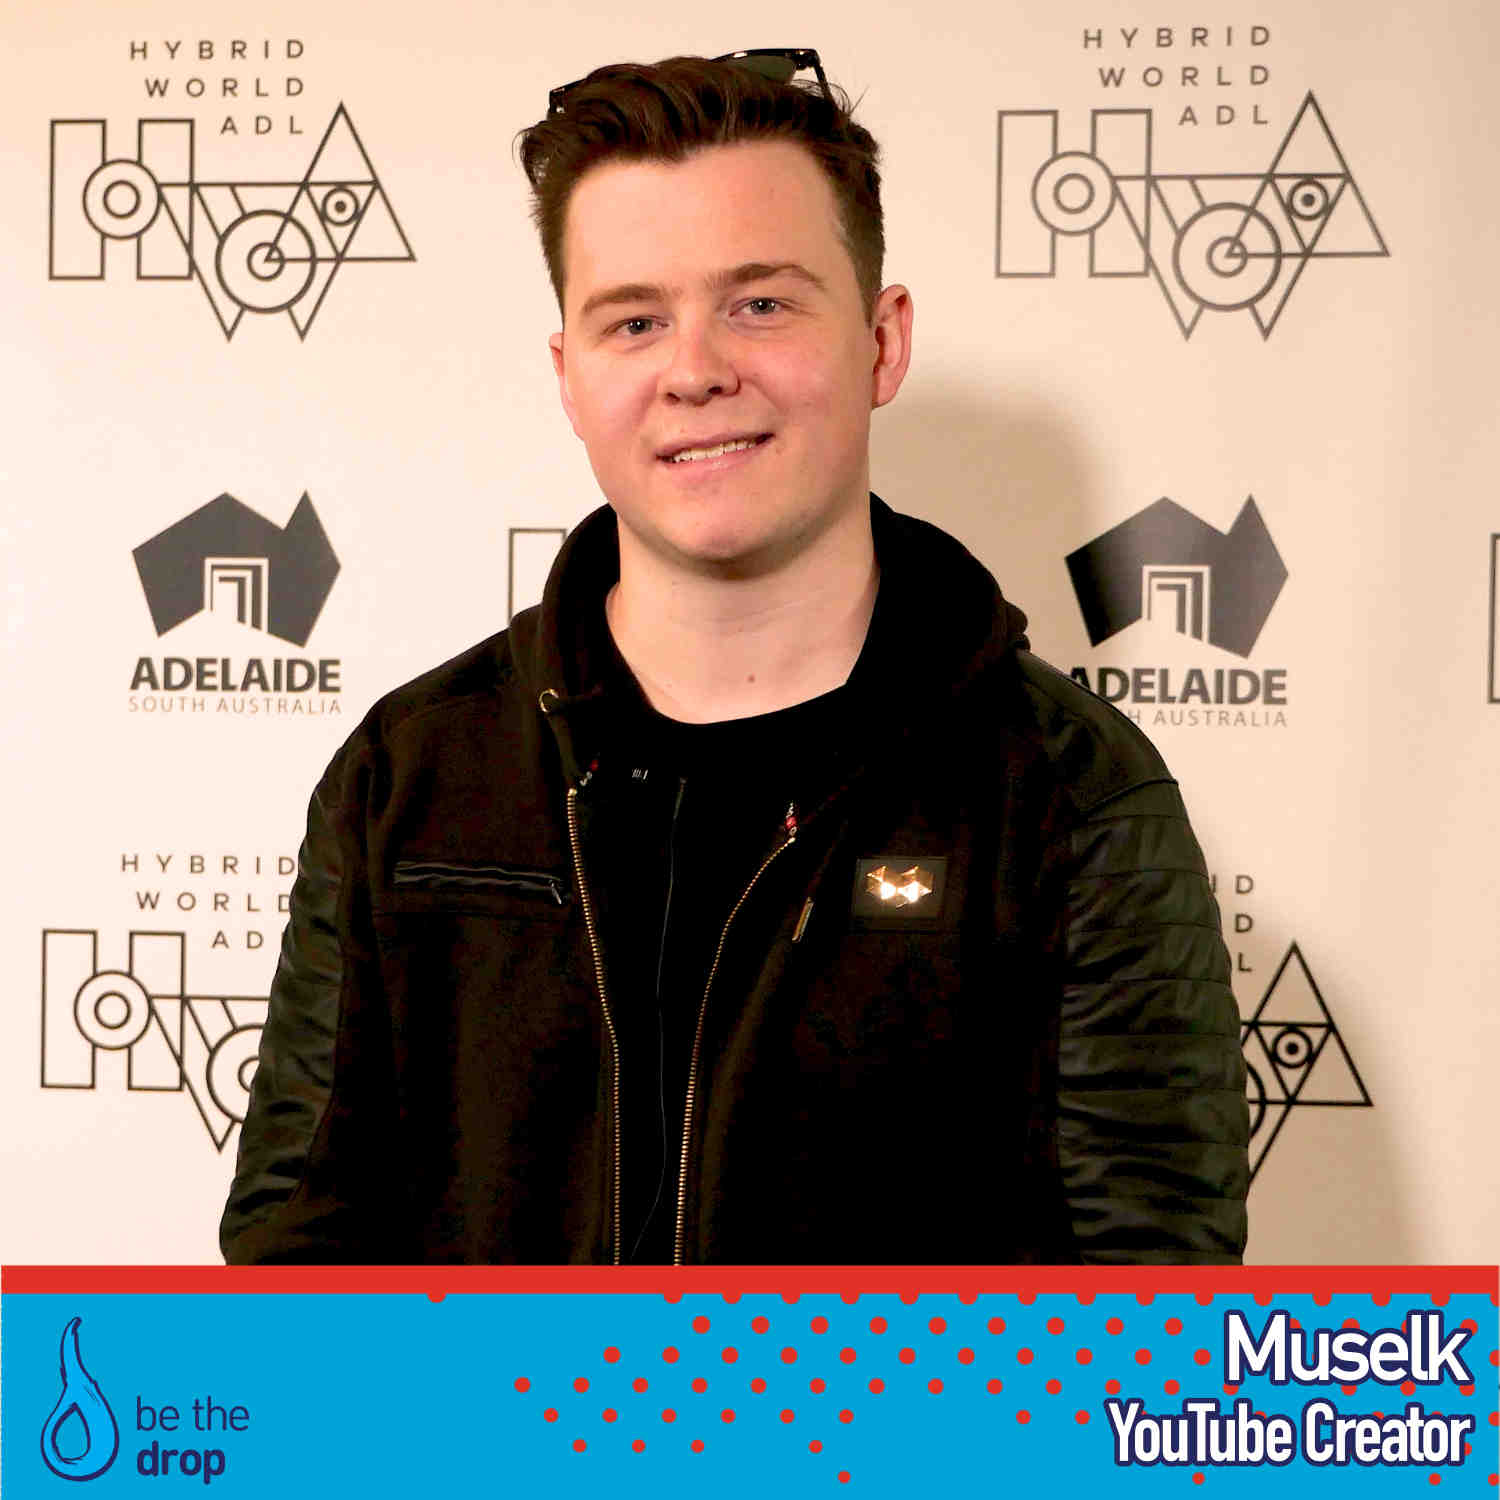 How To Build A Successful YouTube Channel With Muselk [Podcast]